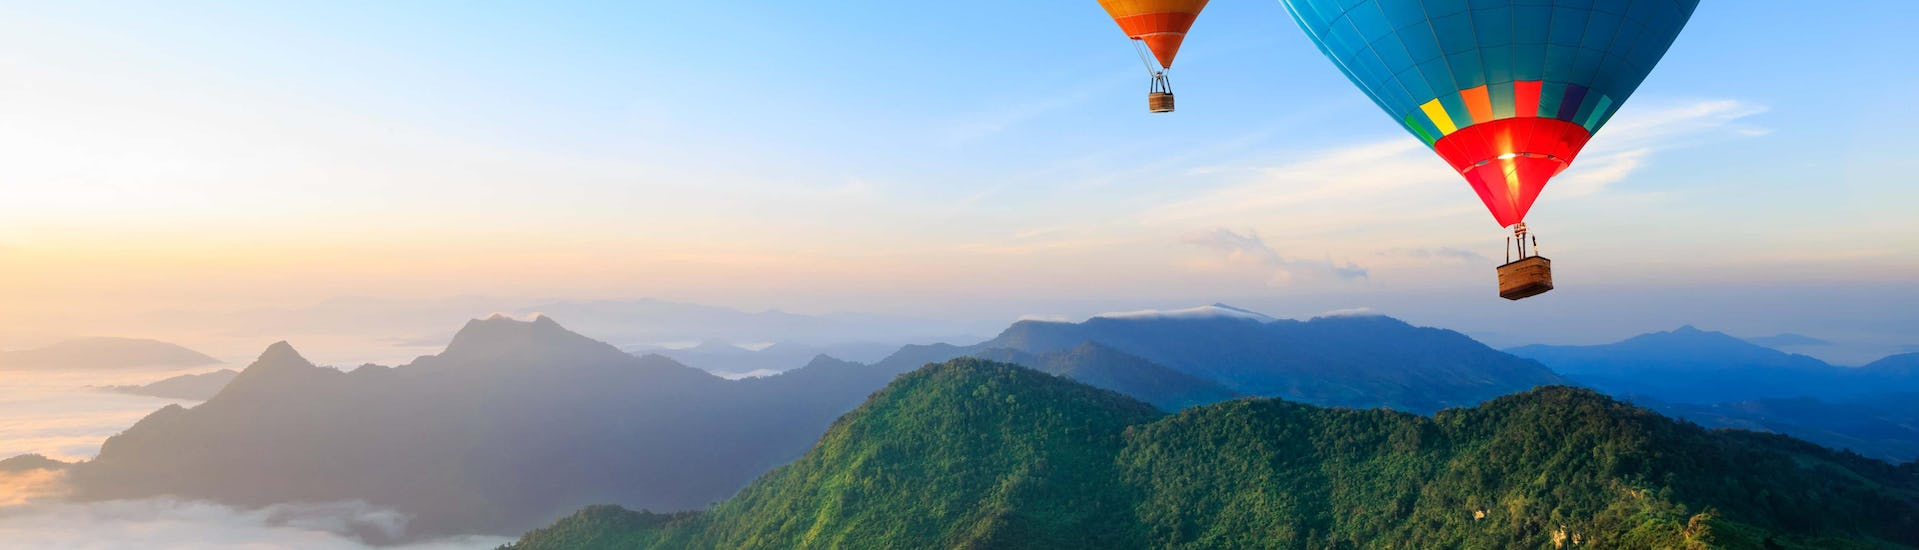 2 hot air balloons flying over a mountain landscape near the sea.